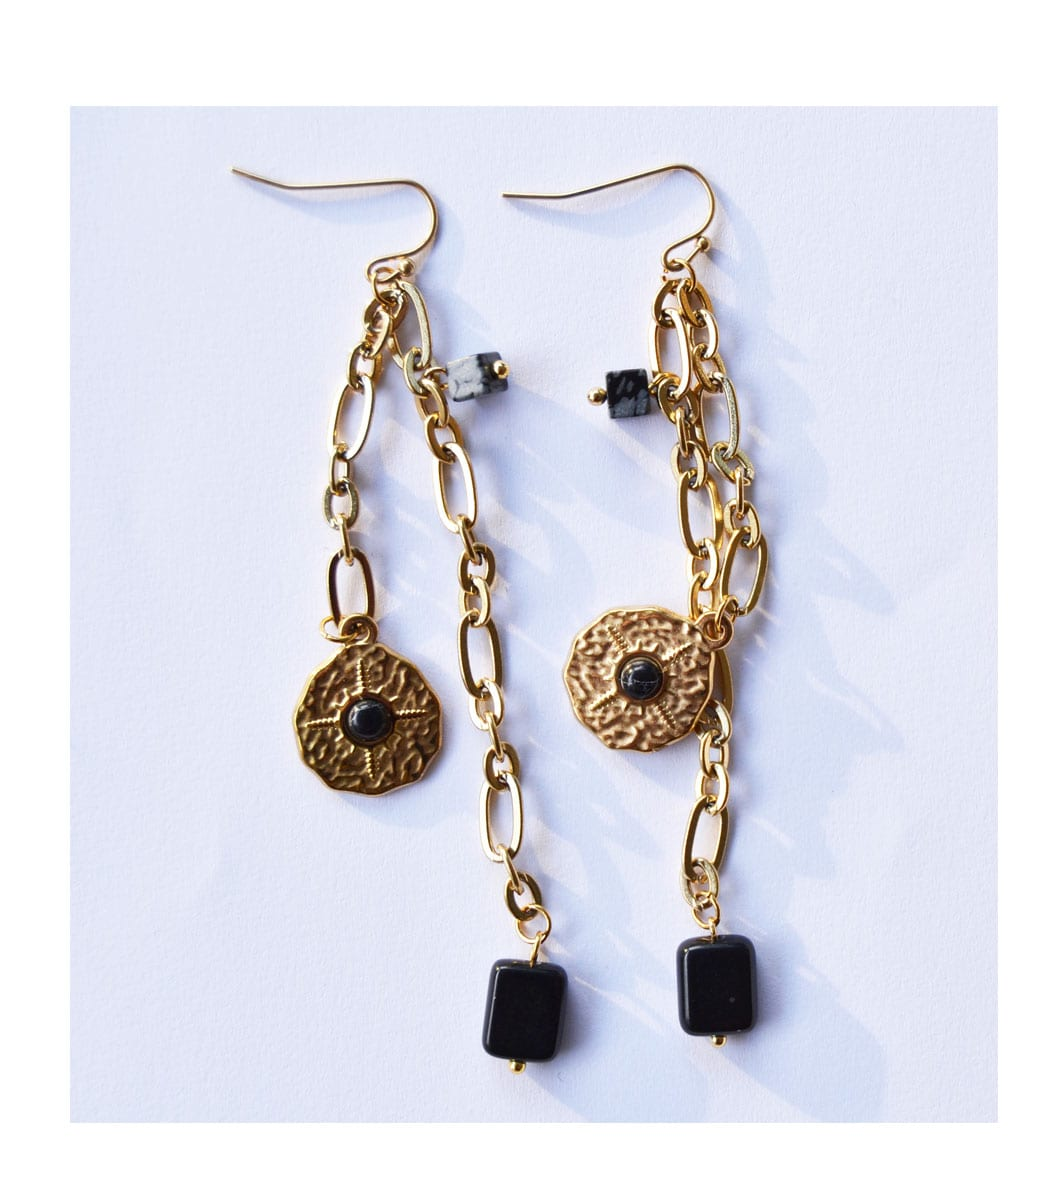 Chain long earrings